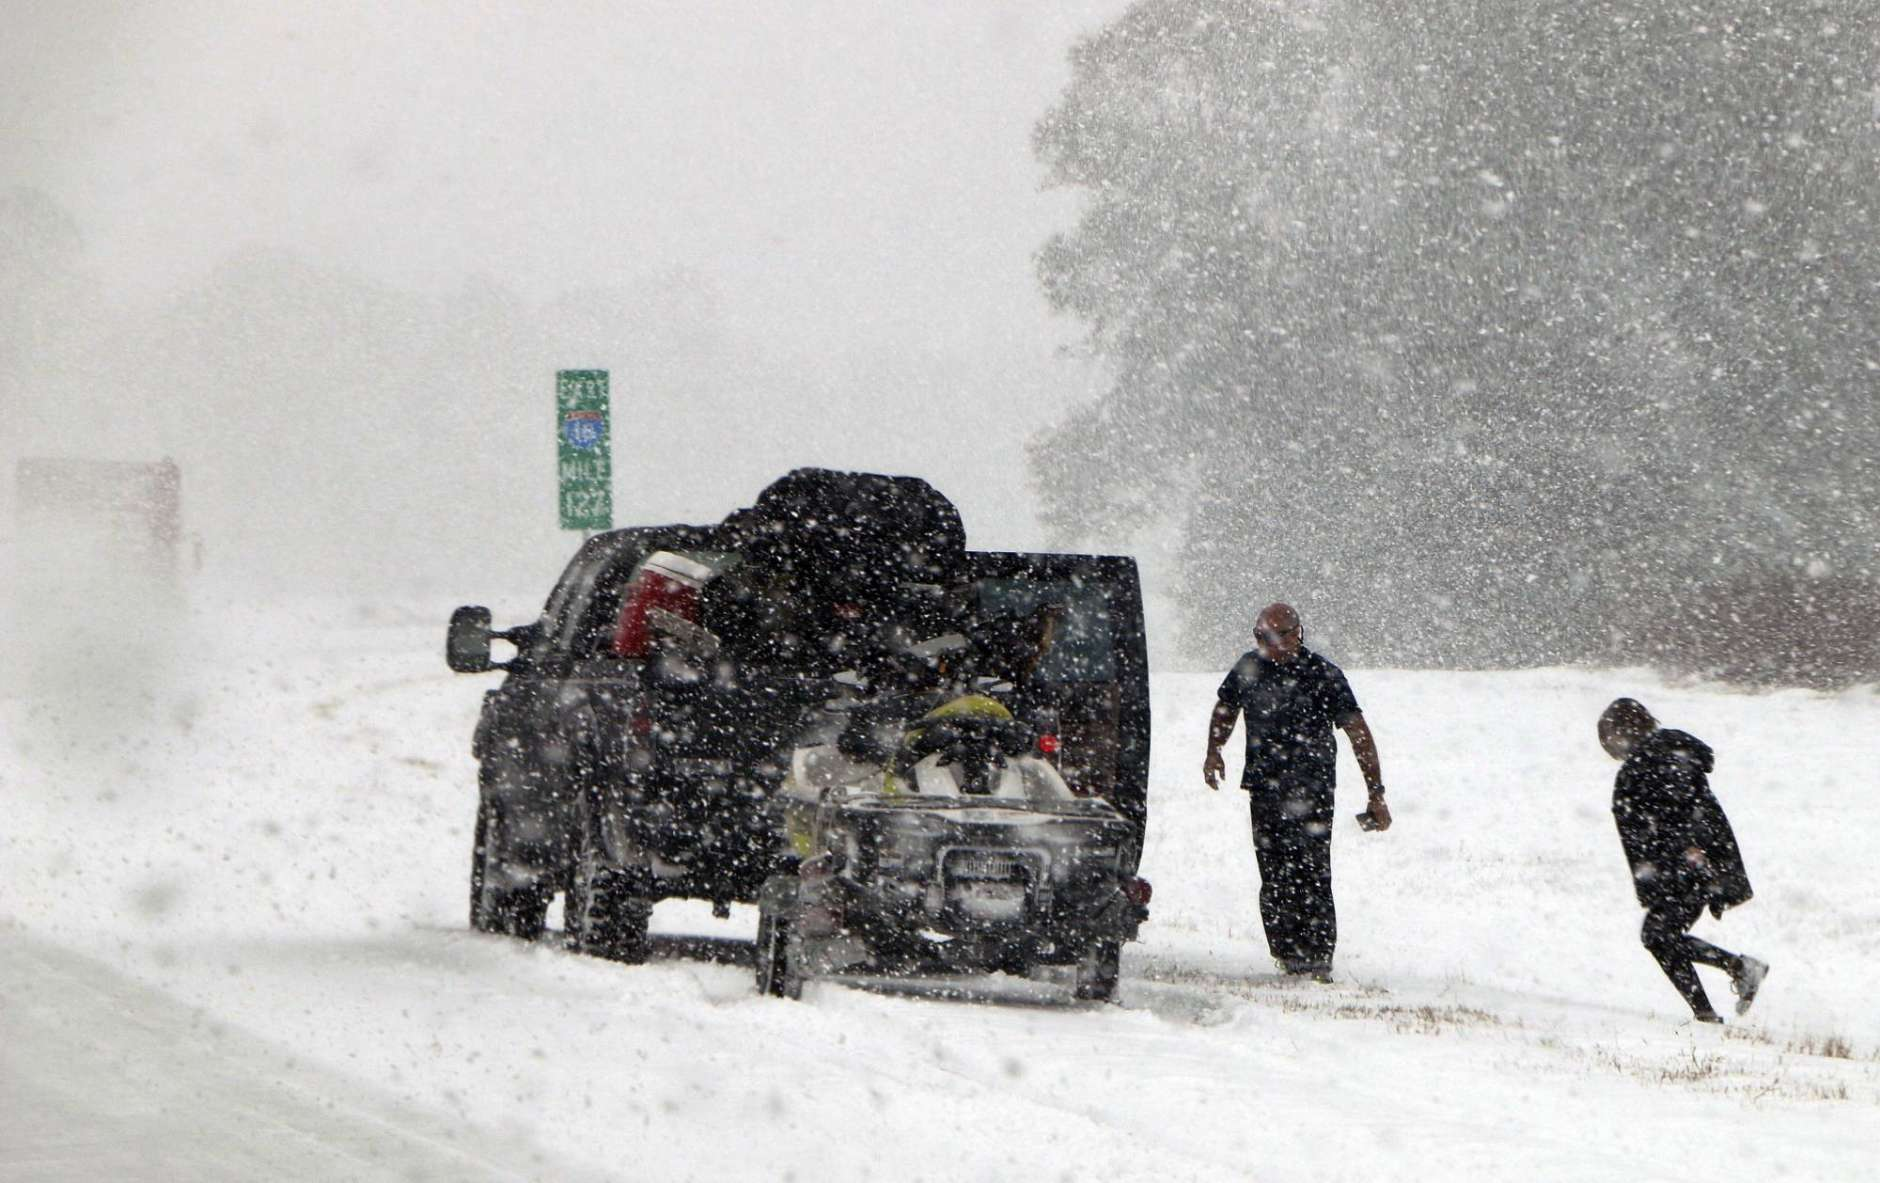 People attend to their vehicle on Interstate 26, near Savannah, Ga., Wednesday, Jan. 3, 2018. A brutal winter storm dumped snow in Tallahassee, Fla., on Wednesday for the first time in nearly three decades before slogging up the Atlantic coast and smacking Southern cities such as Savannah and Charleston, South Carolina, with a rare blast of snow and ice. (AP Photo/Robert Ray)